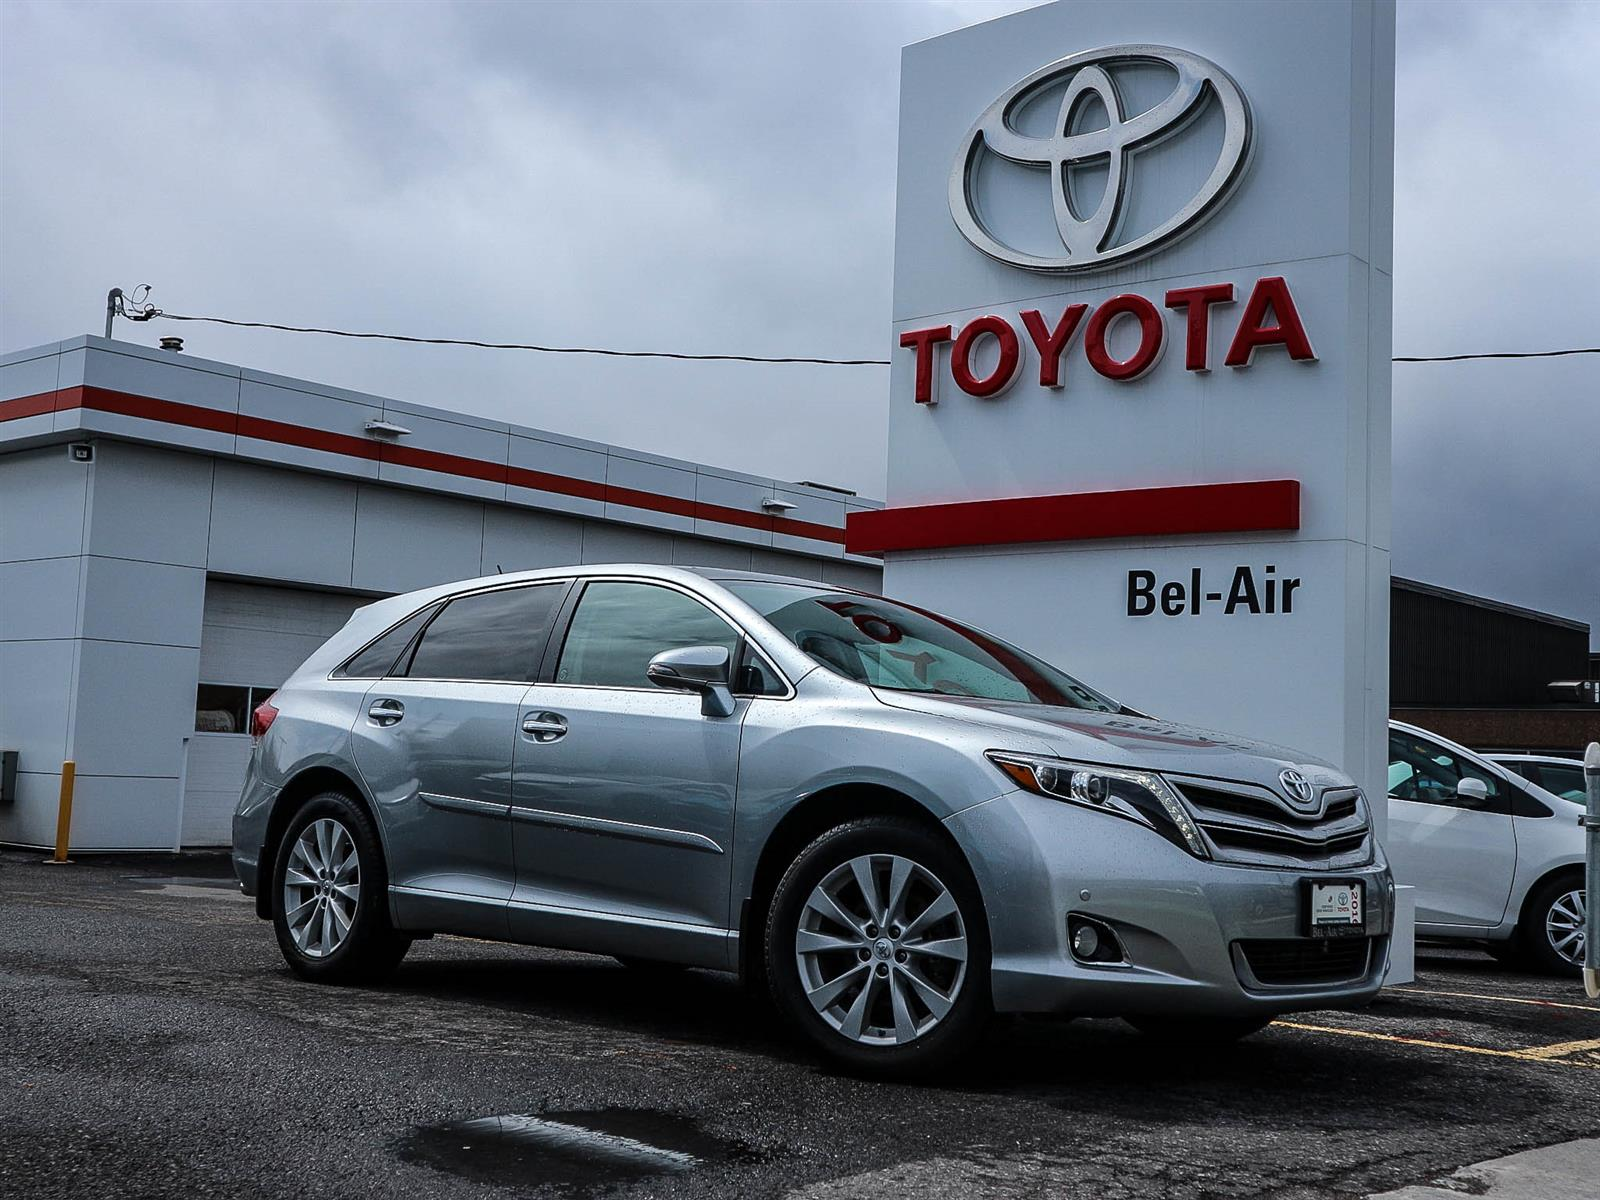 2016 Toyota Venza at Bel-Air Toyota